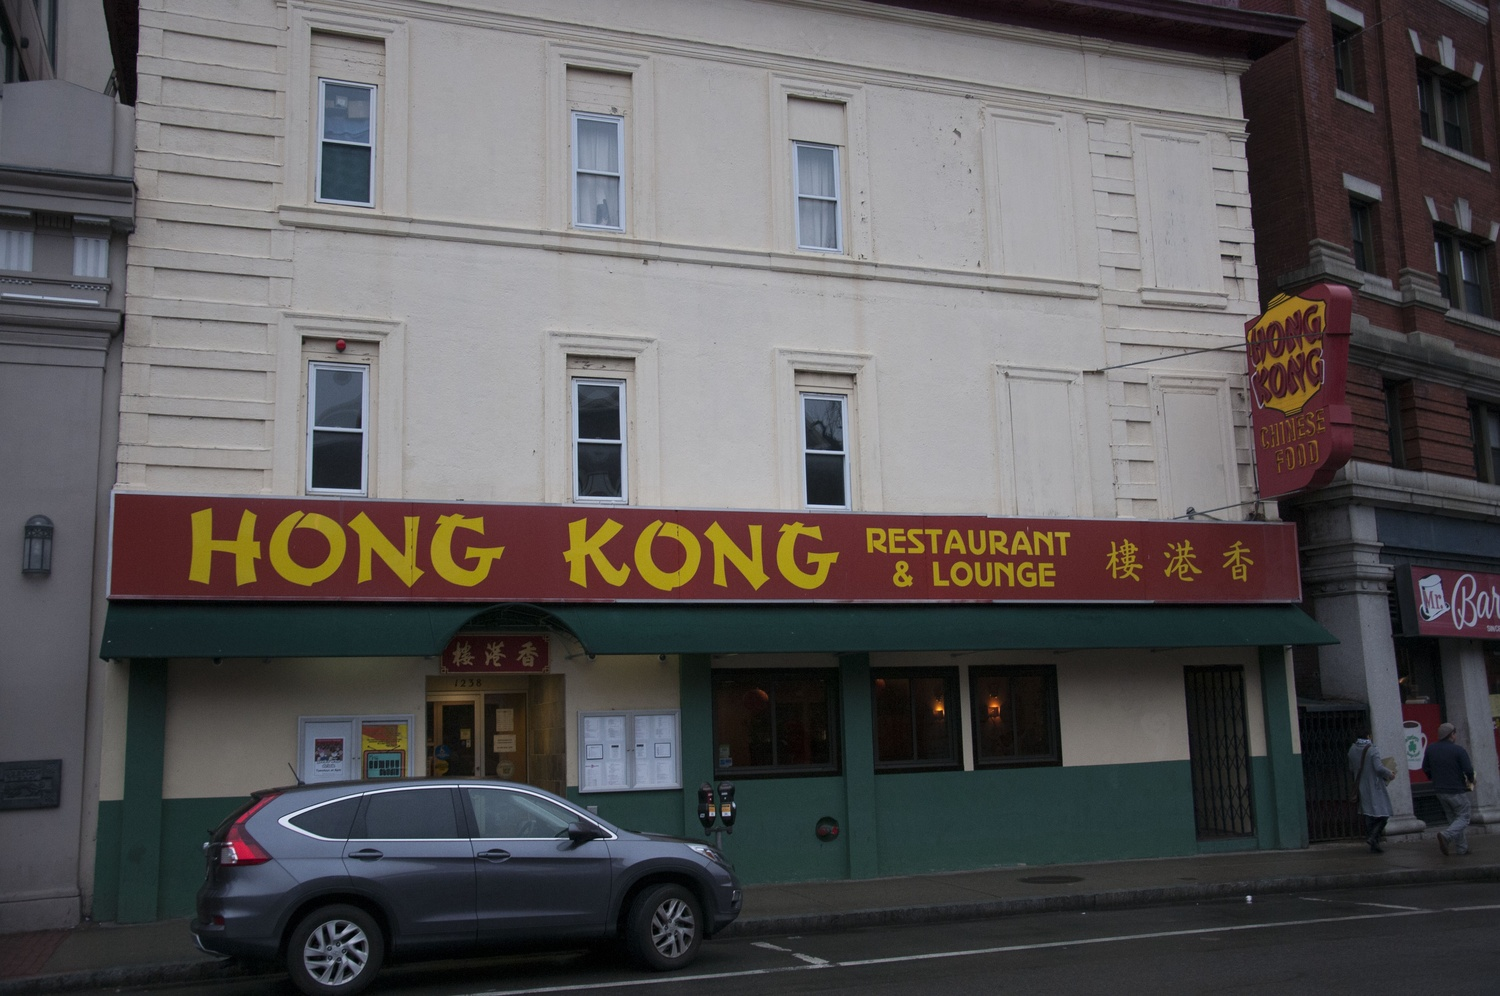 The Hong Kong restaurant will open a live music venue on its third floor next month.